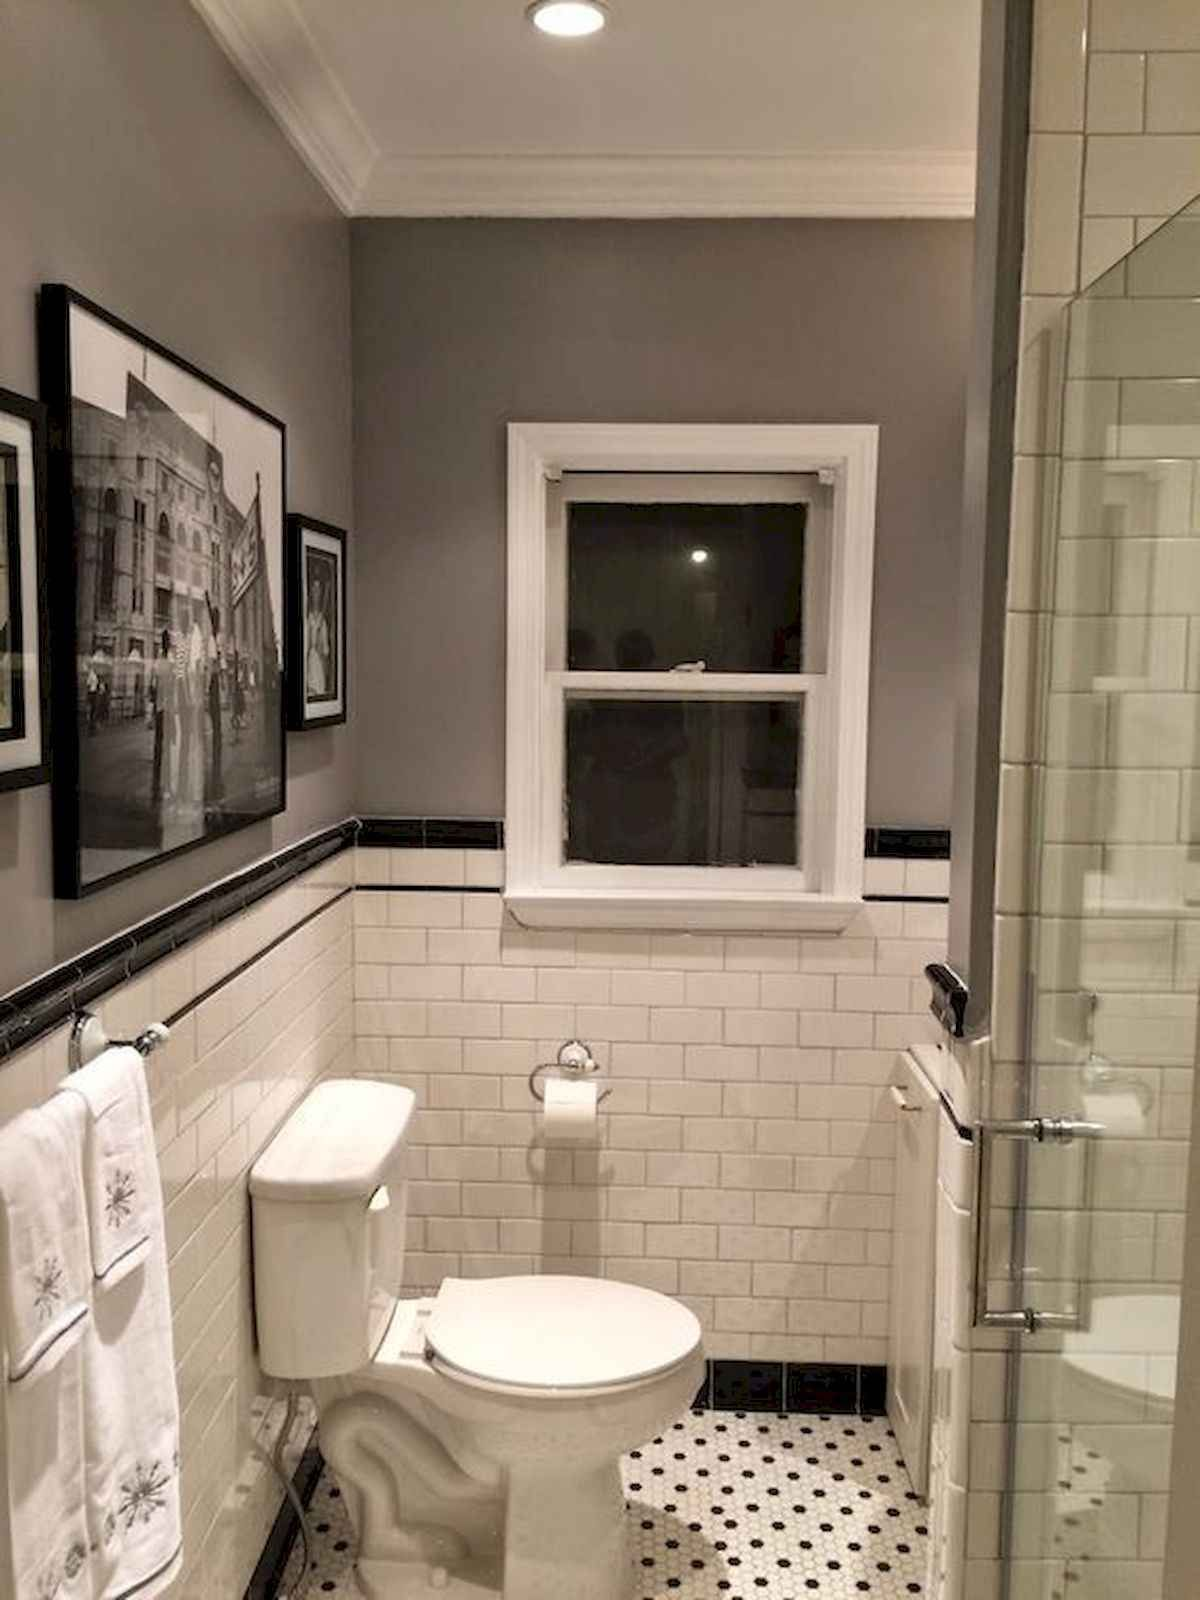 55 Fresh Small Master Bathroom Remodel Ideas And Design 10 With Images Classic Bathroom Tile Vintage Bathroom Tile Classic Bathroom